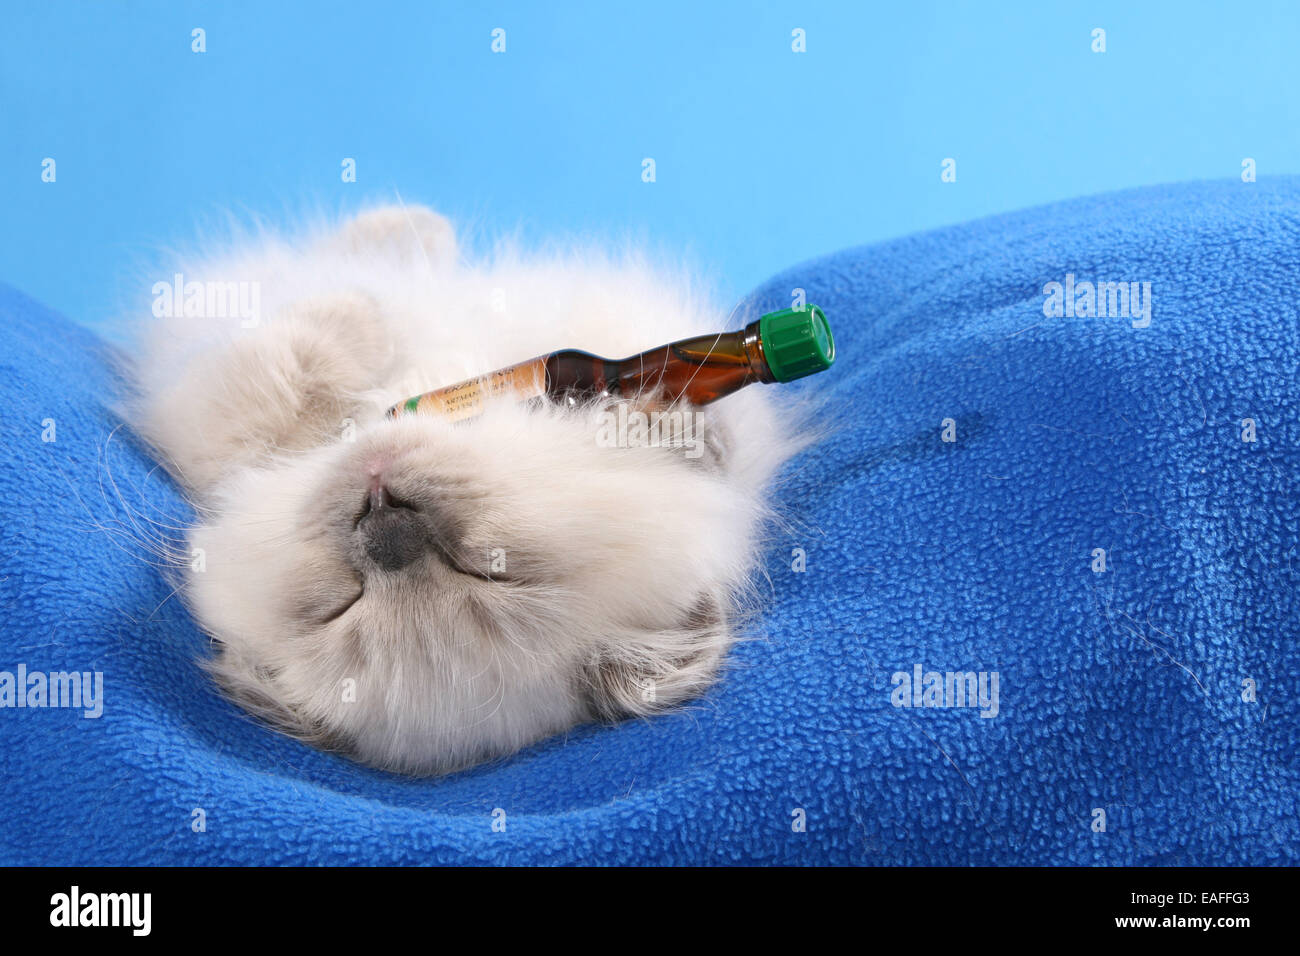 Highlander Kitten - Stock Image